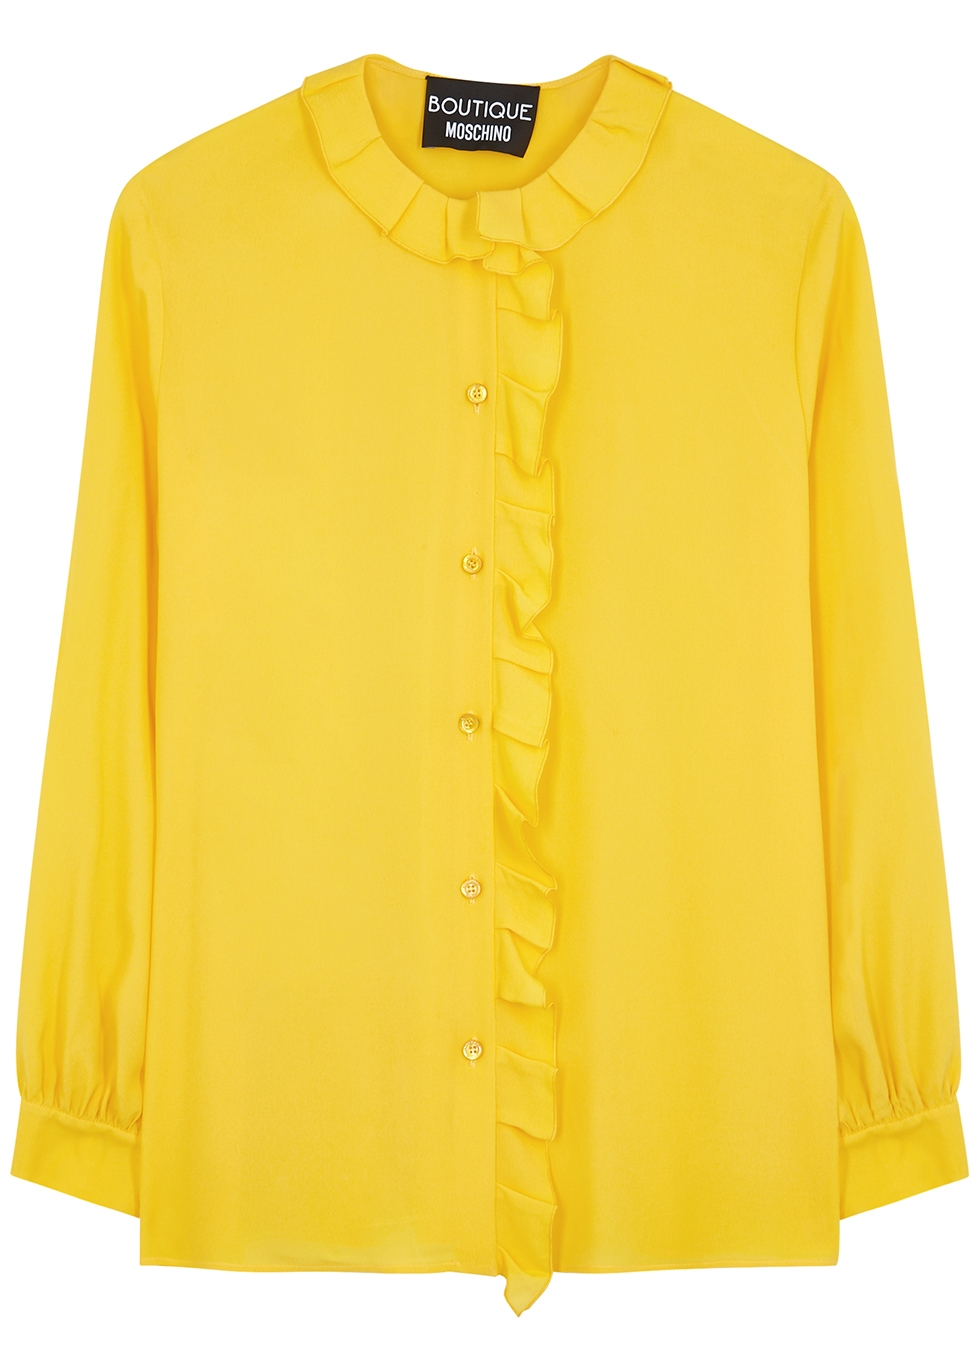 Yellow ruffle-trimmed blouse